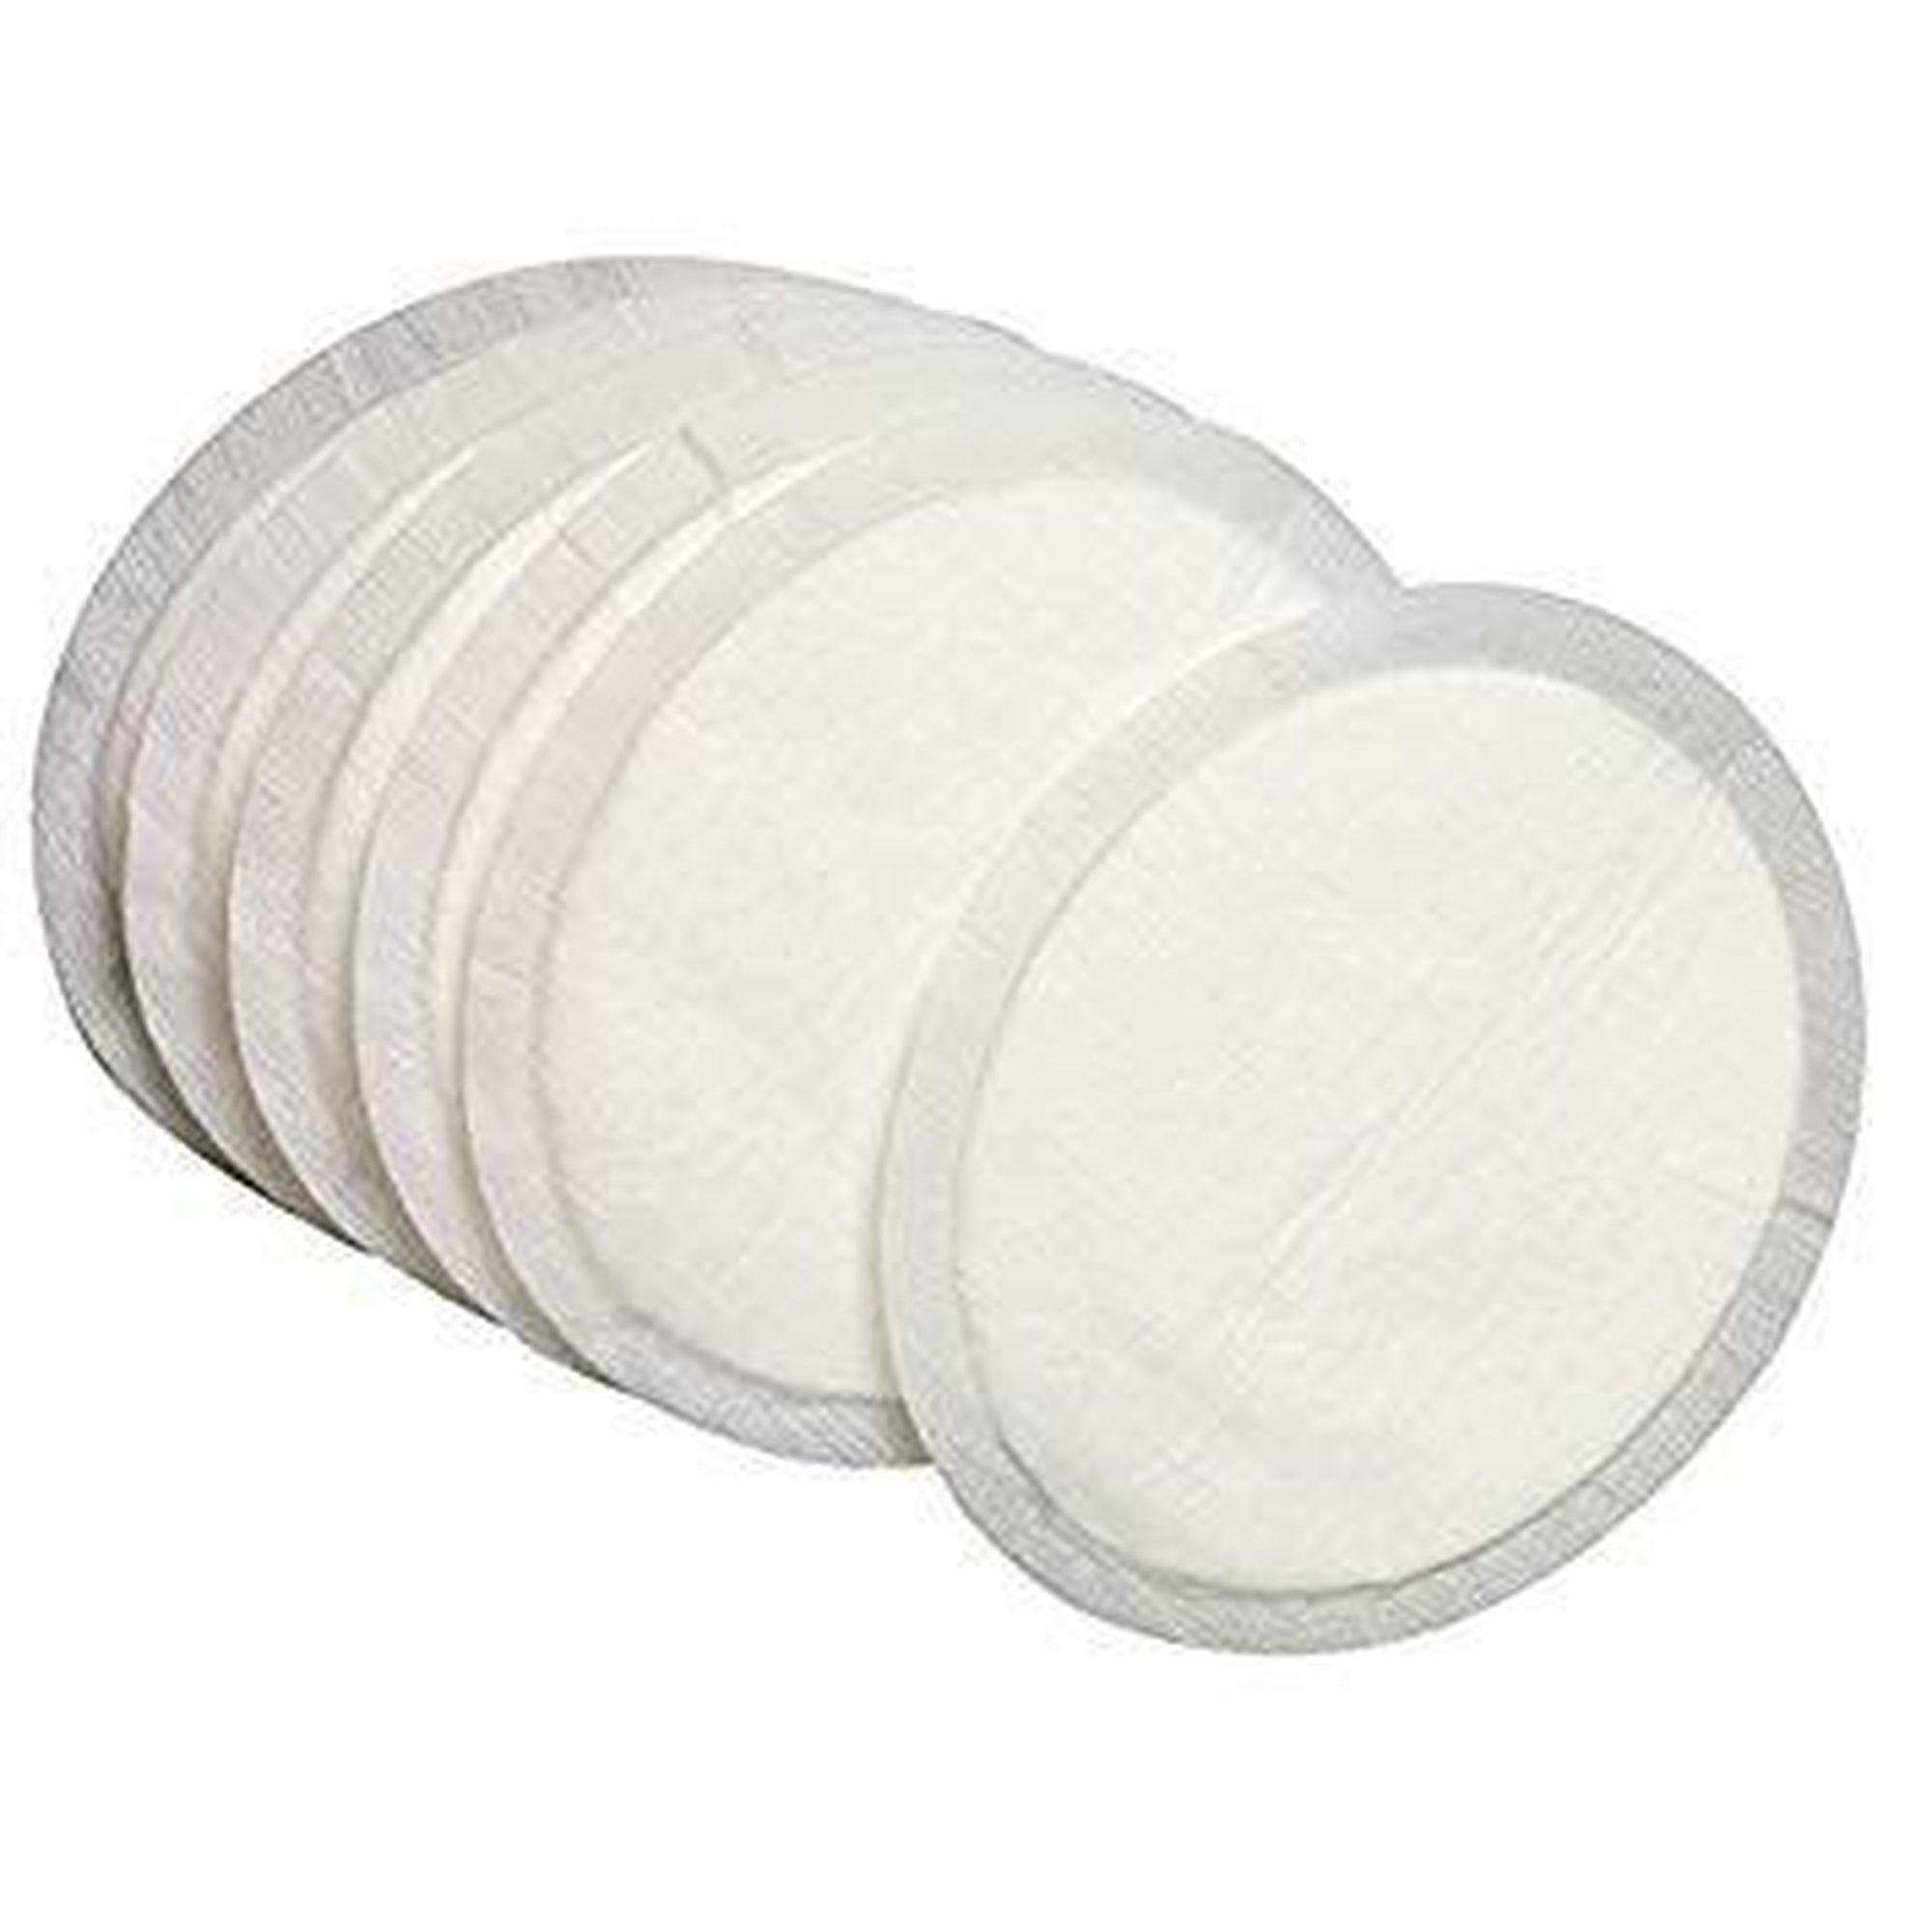 Dr. Brown's Disposable Breast Pad (Oval), 30-Pack-Breast Pads-Mother and Baby Shop Kenya's #1 Online Baby Shop